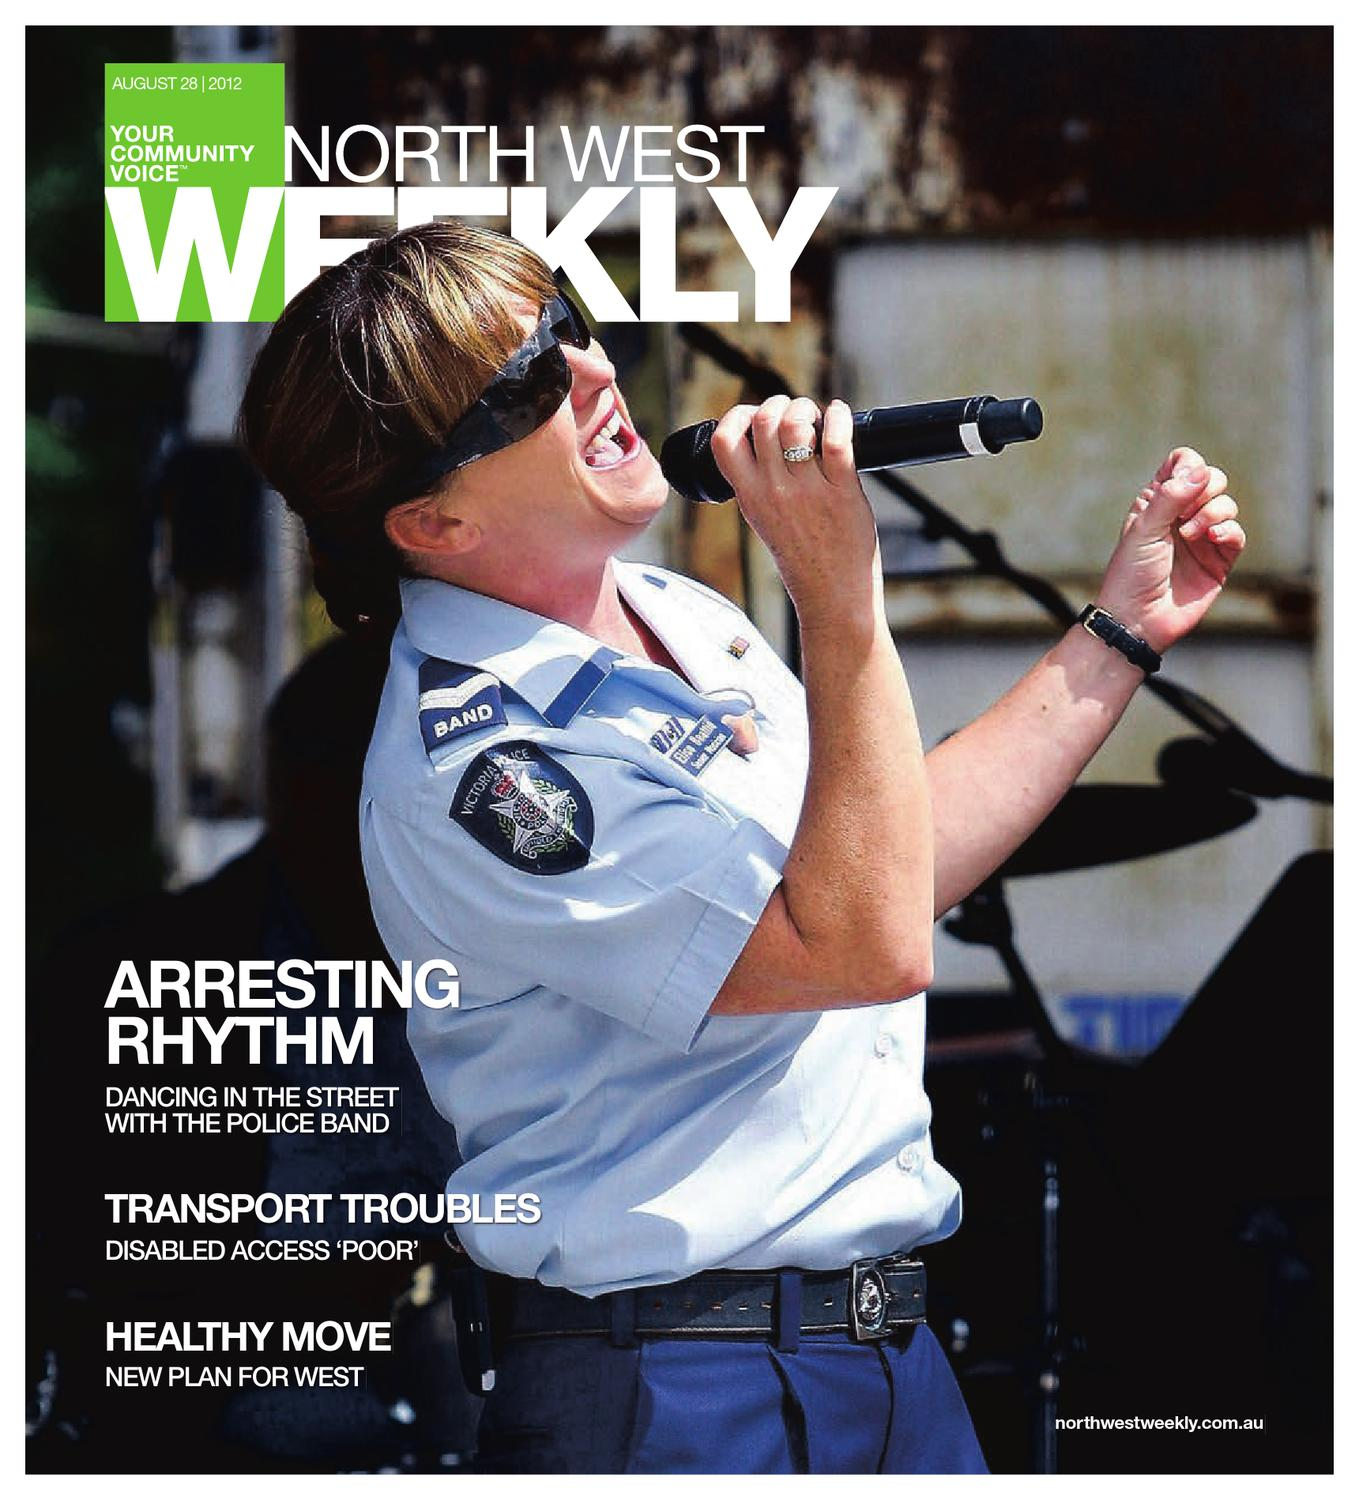 aa299618846d North West Weekly 28-08-2012 by The Weekly Review - issuu